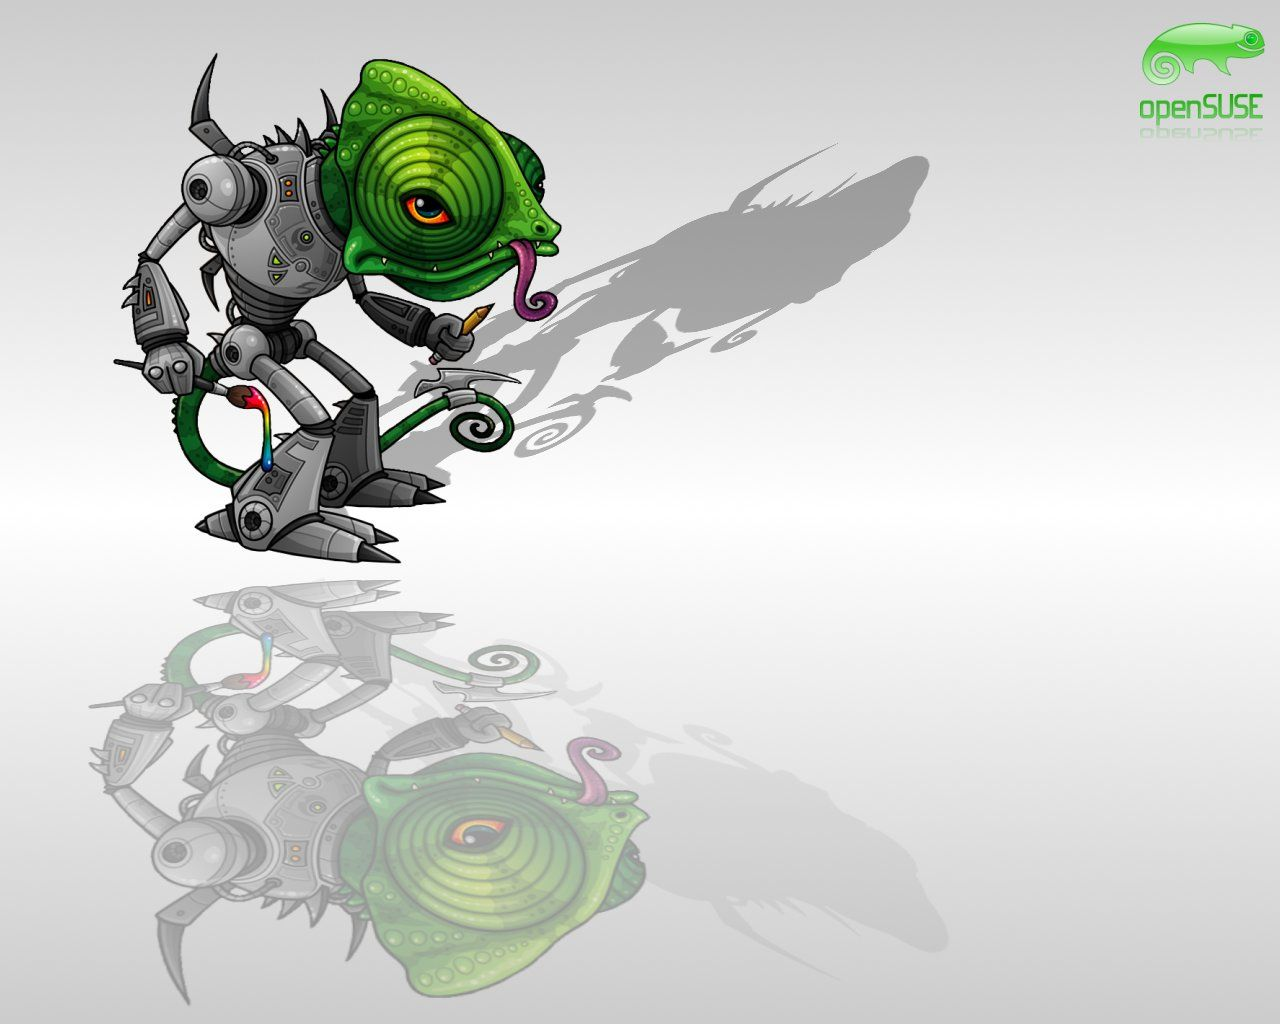 opensuse_wallpaper